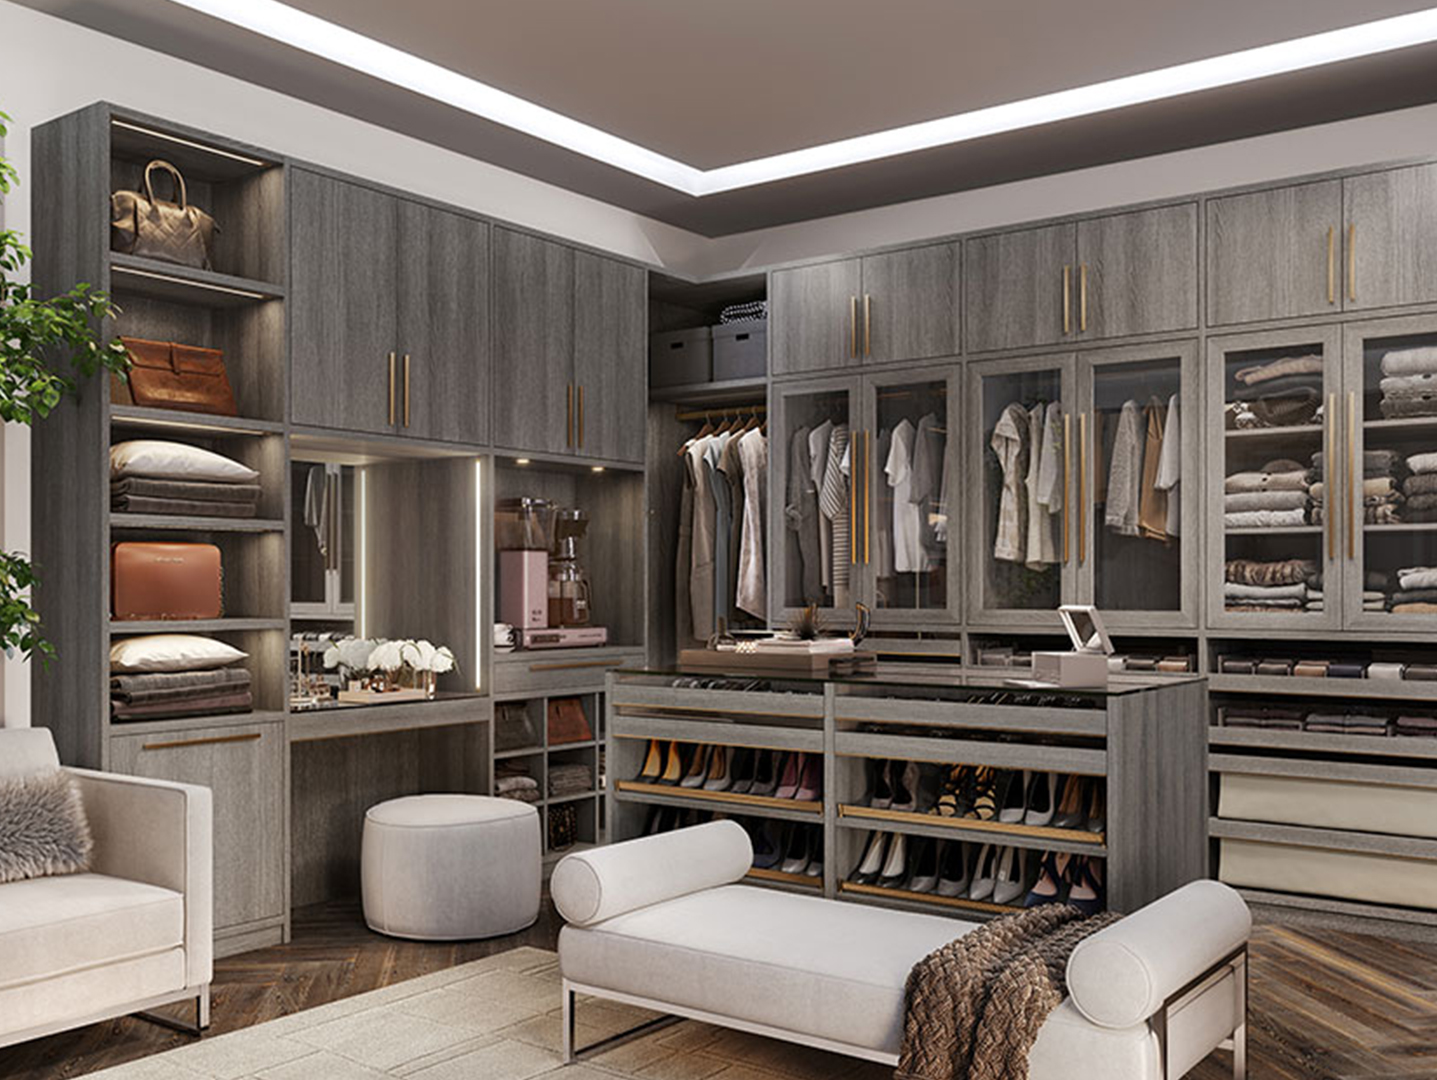 Walk-In Closet <h3>Your <strong>Capital Cabinet & Closet</strong> walk-in closet will be completely bespoke, created to work with your life, and have the storage features you require. </h3>